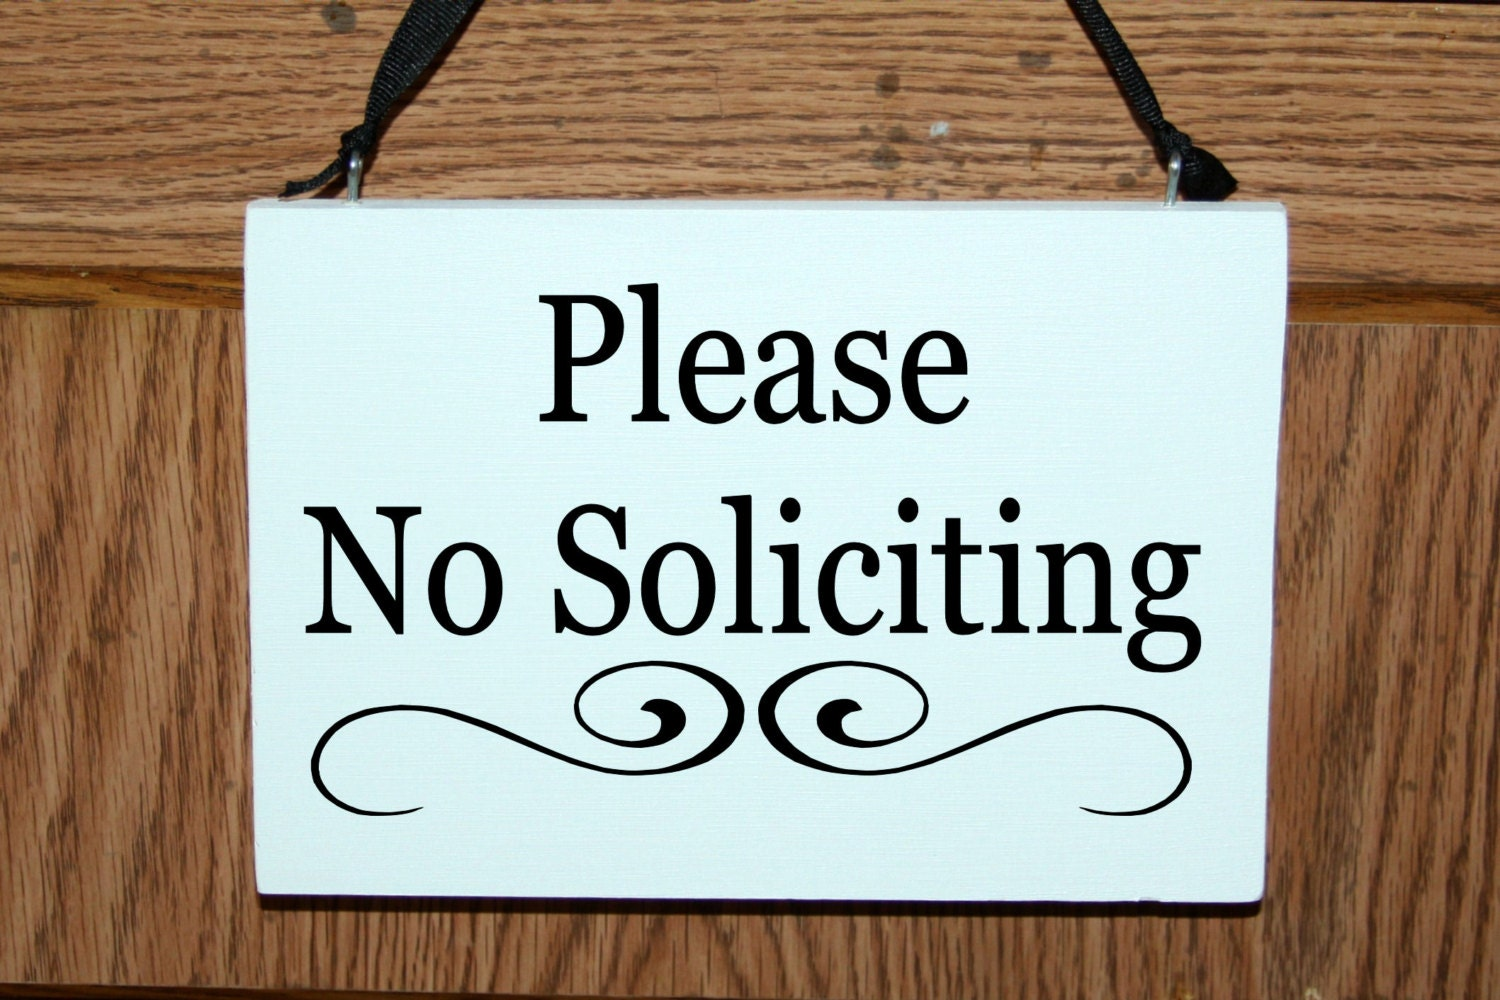 Please No Soliciting Door Hanger Sign